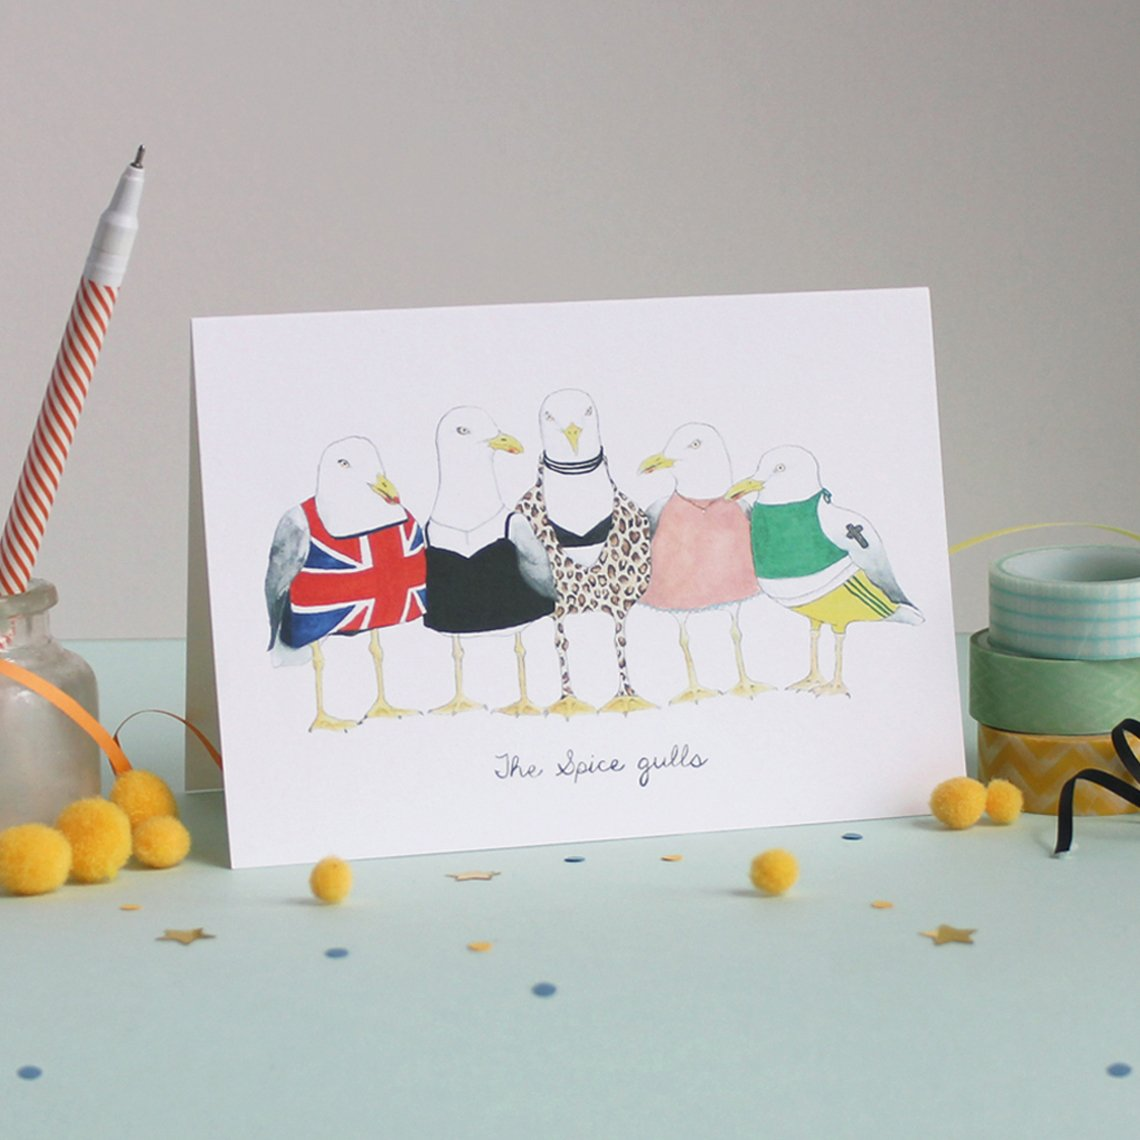 Mister Peebles Greeting Card 'Spice Gulls'